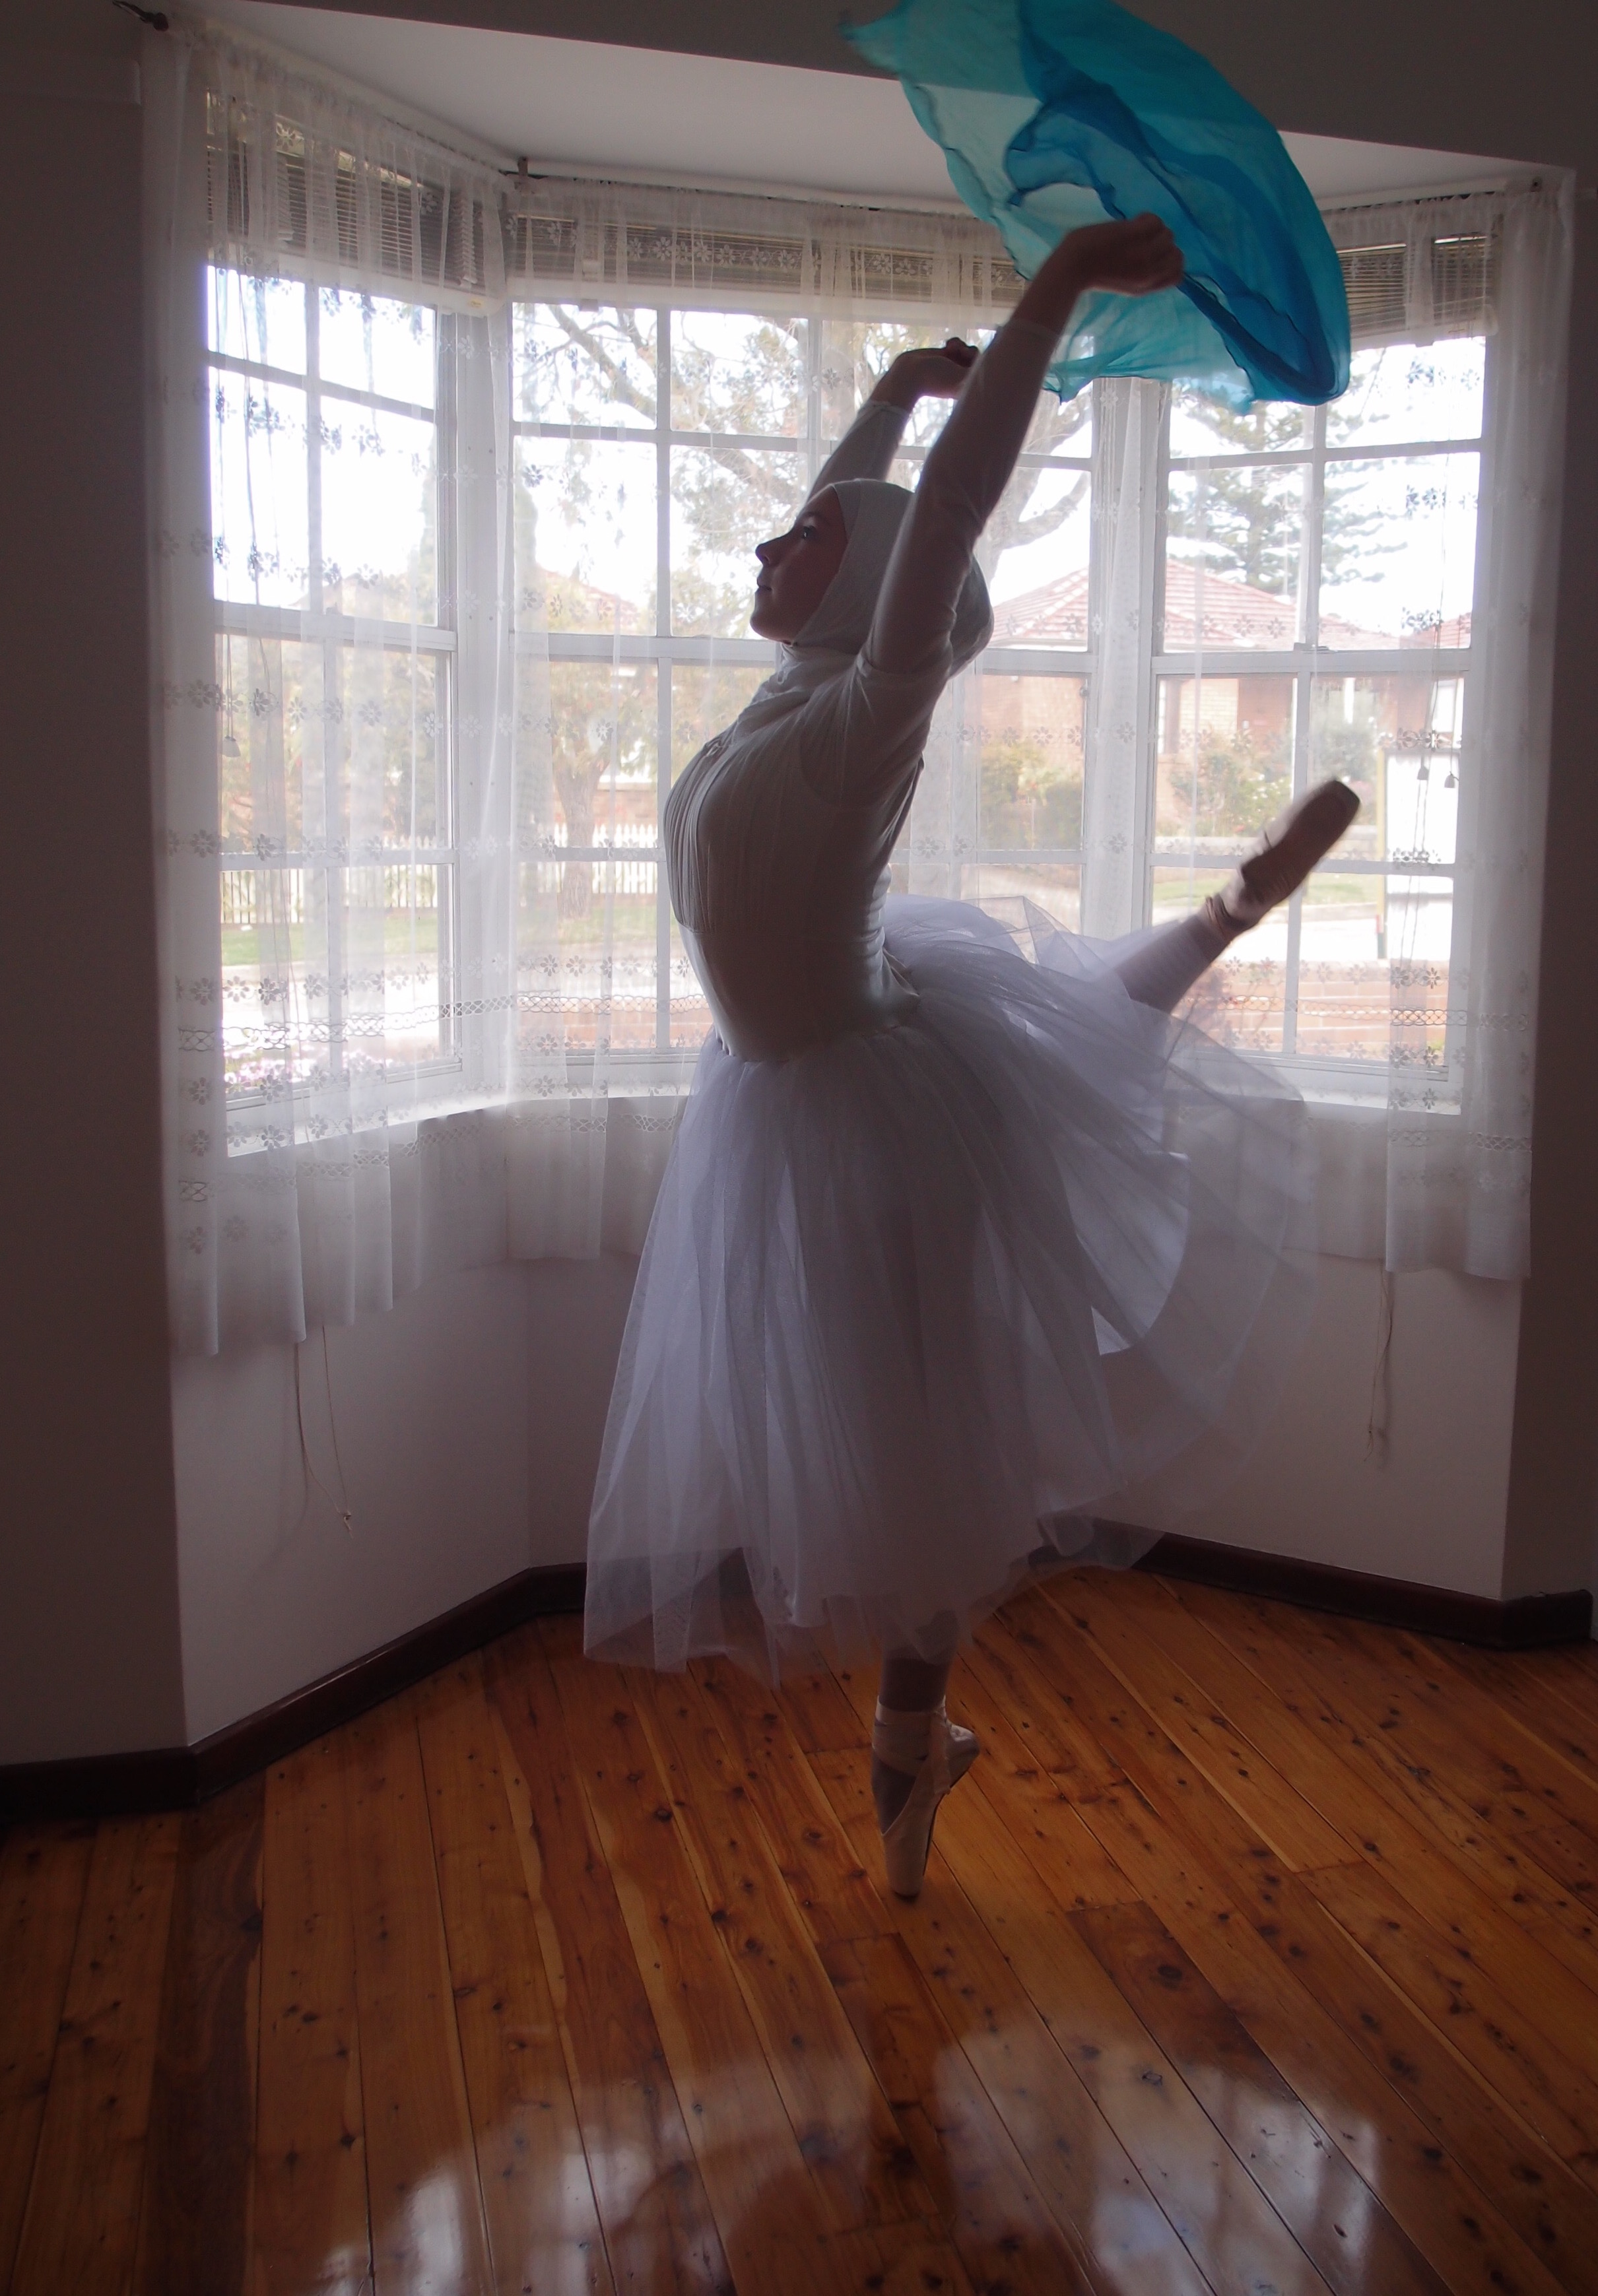 Teen wants to become the first hijabi ballerina